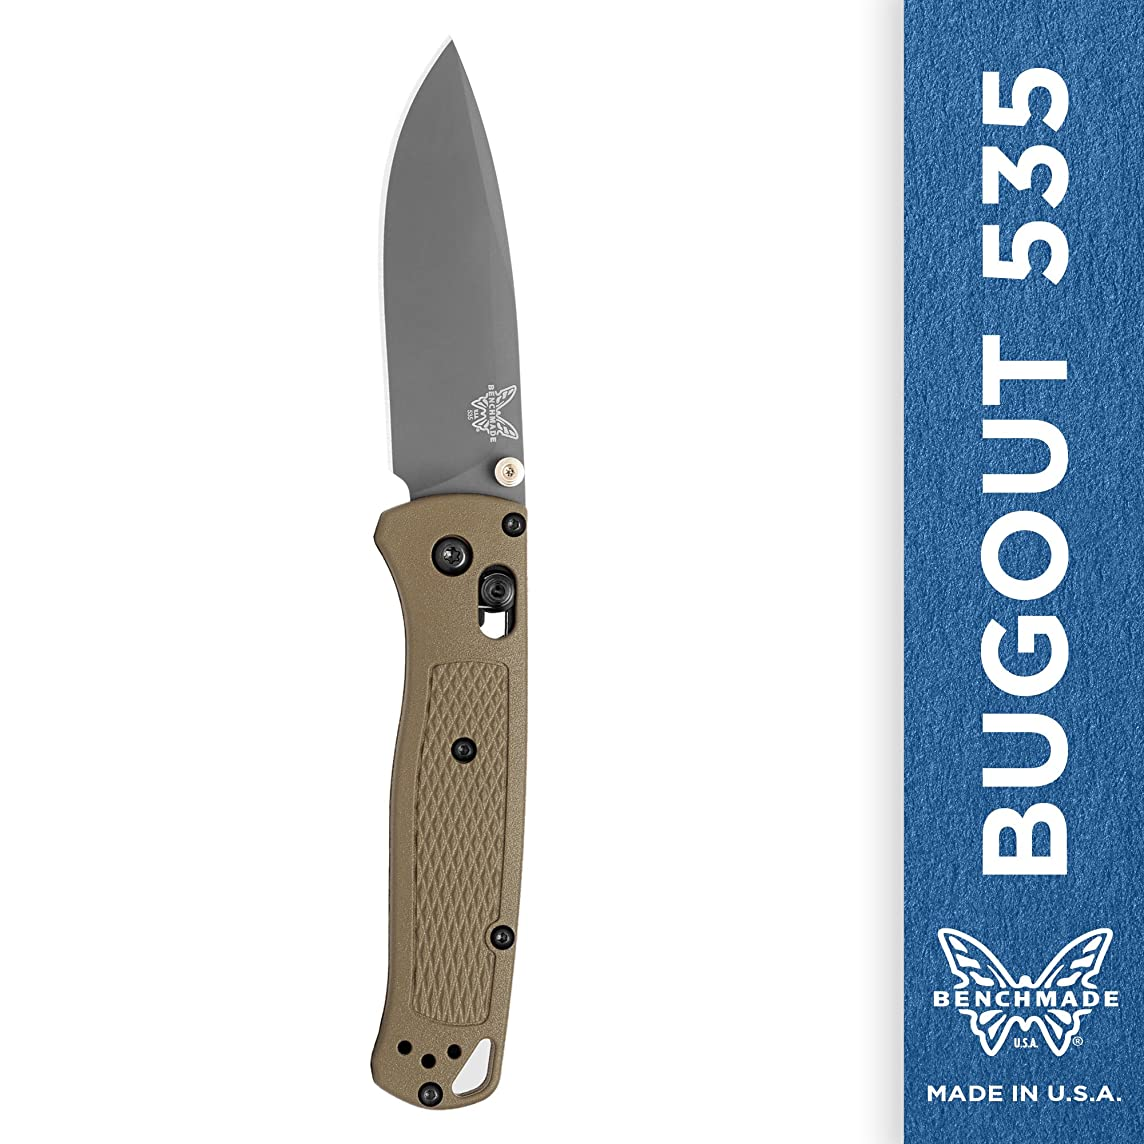 Benchmade - Bugout 535 EDC Manual Open Folding Knife Made in USA